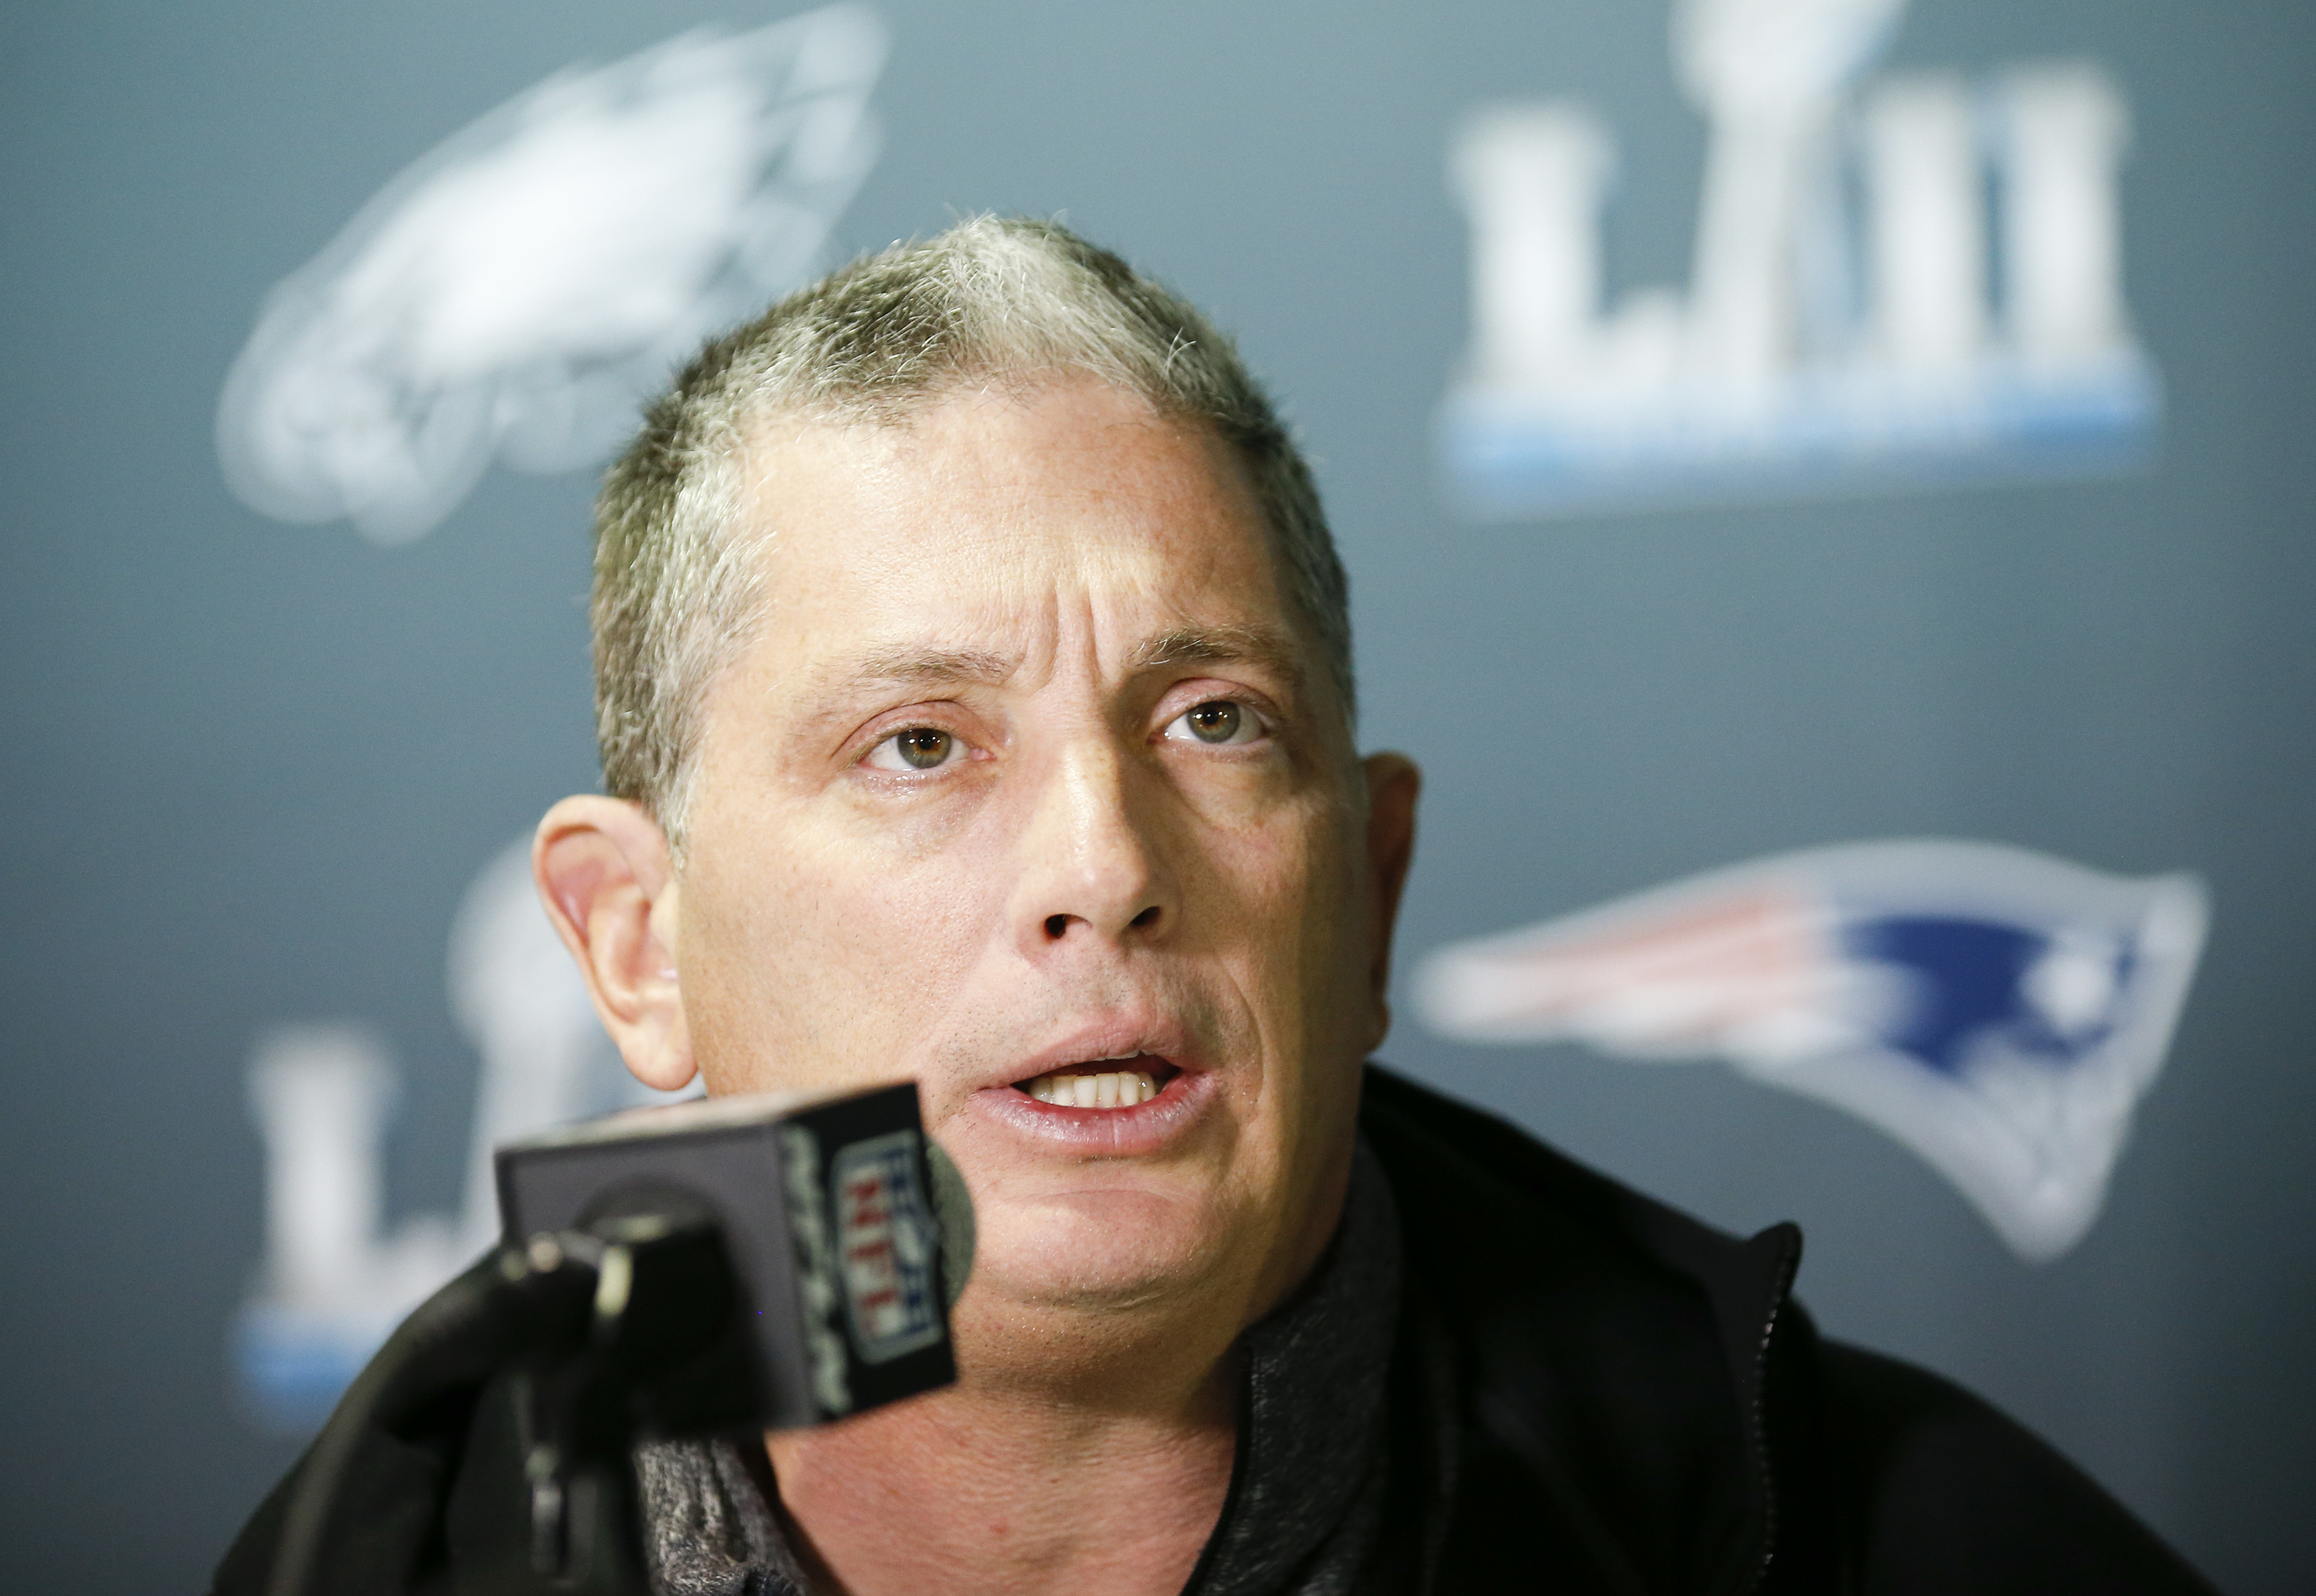 Eagles defensive coordinator Jim Schwartz taking questions from the media four days before the Super Bowl.